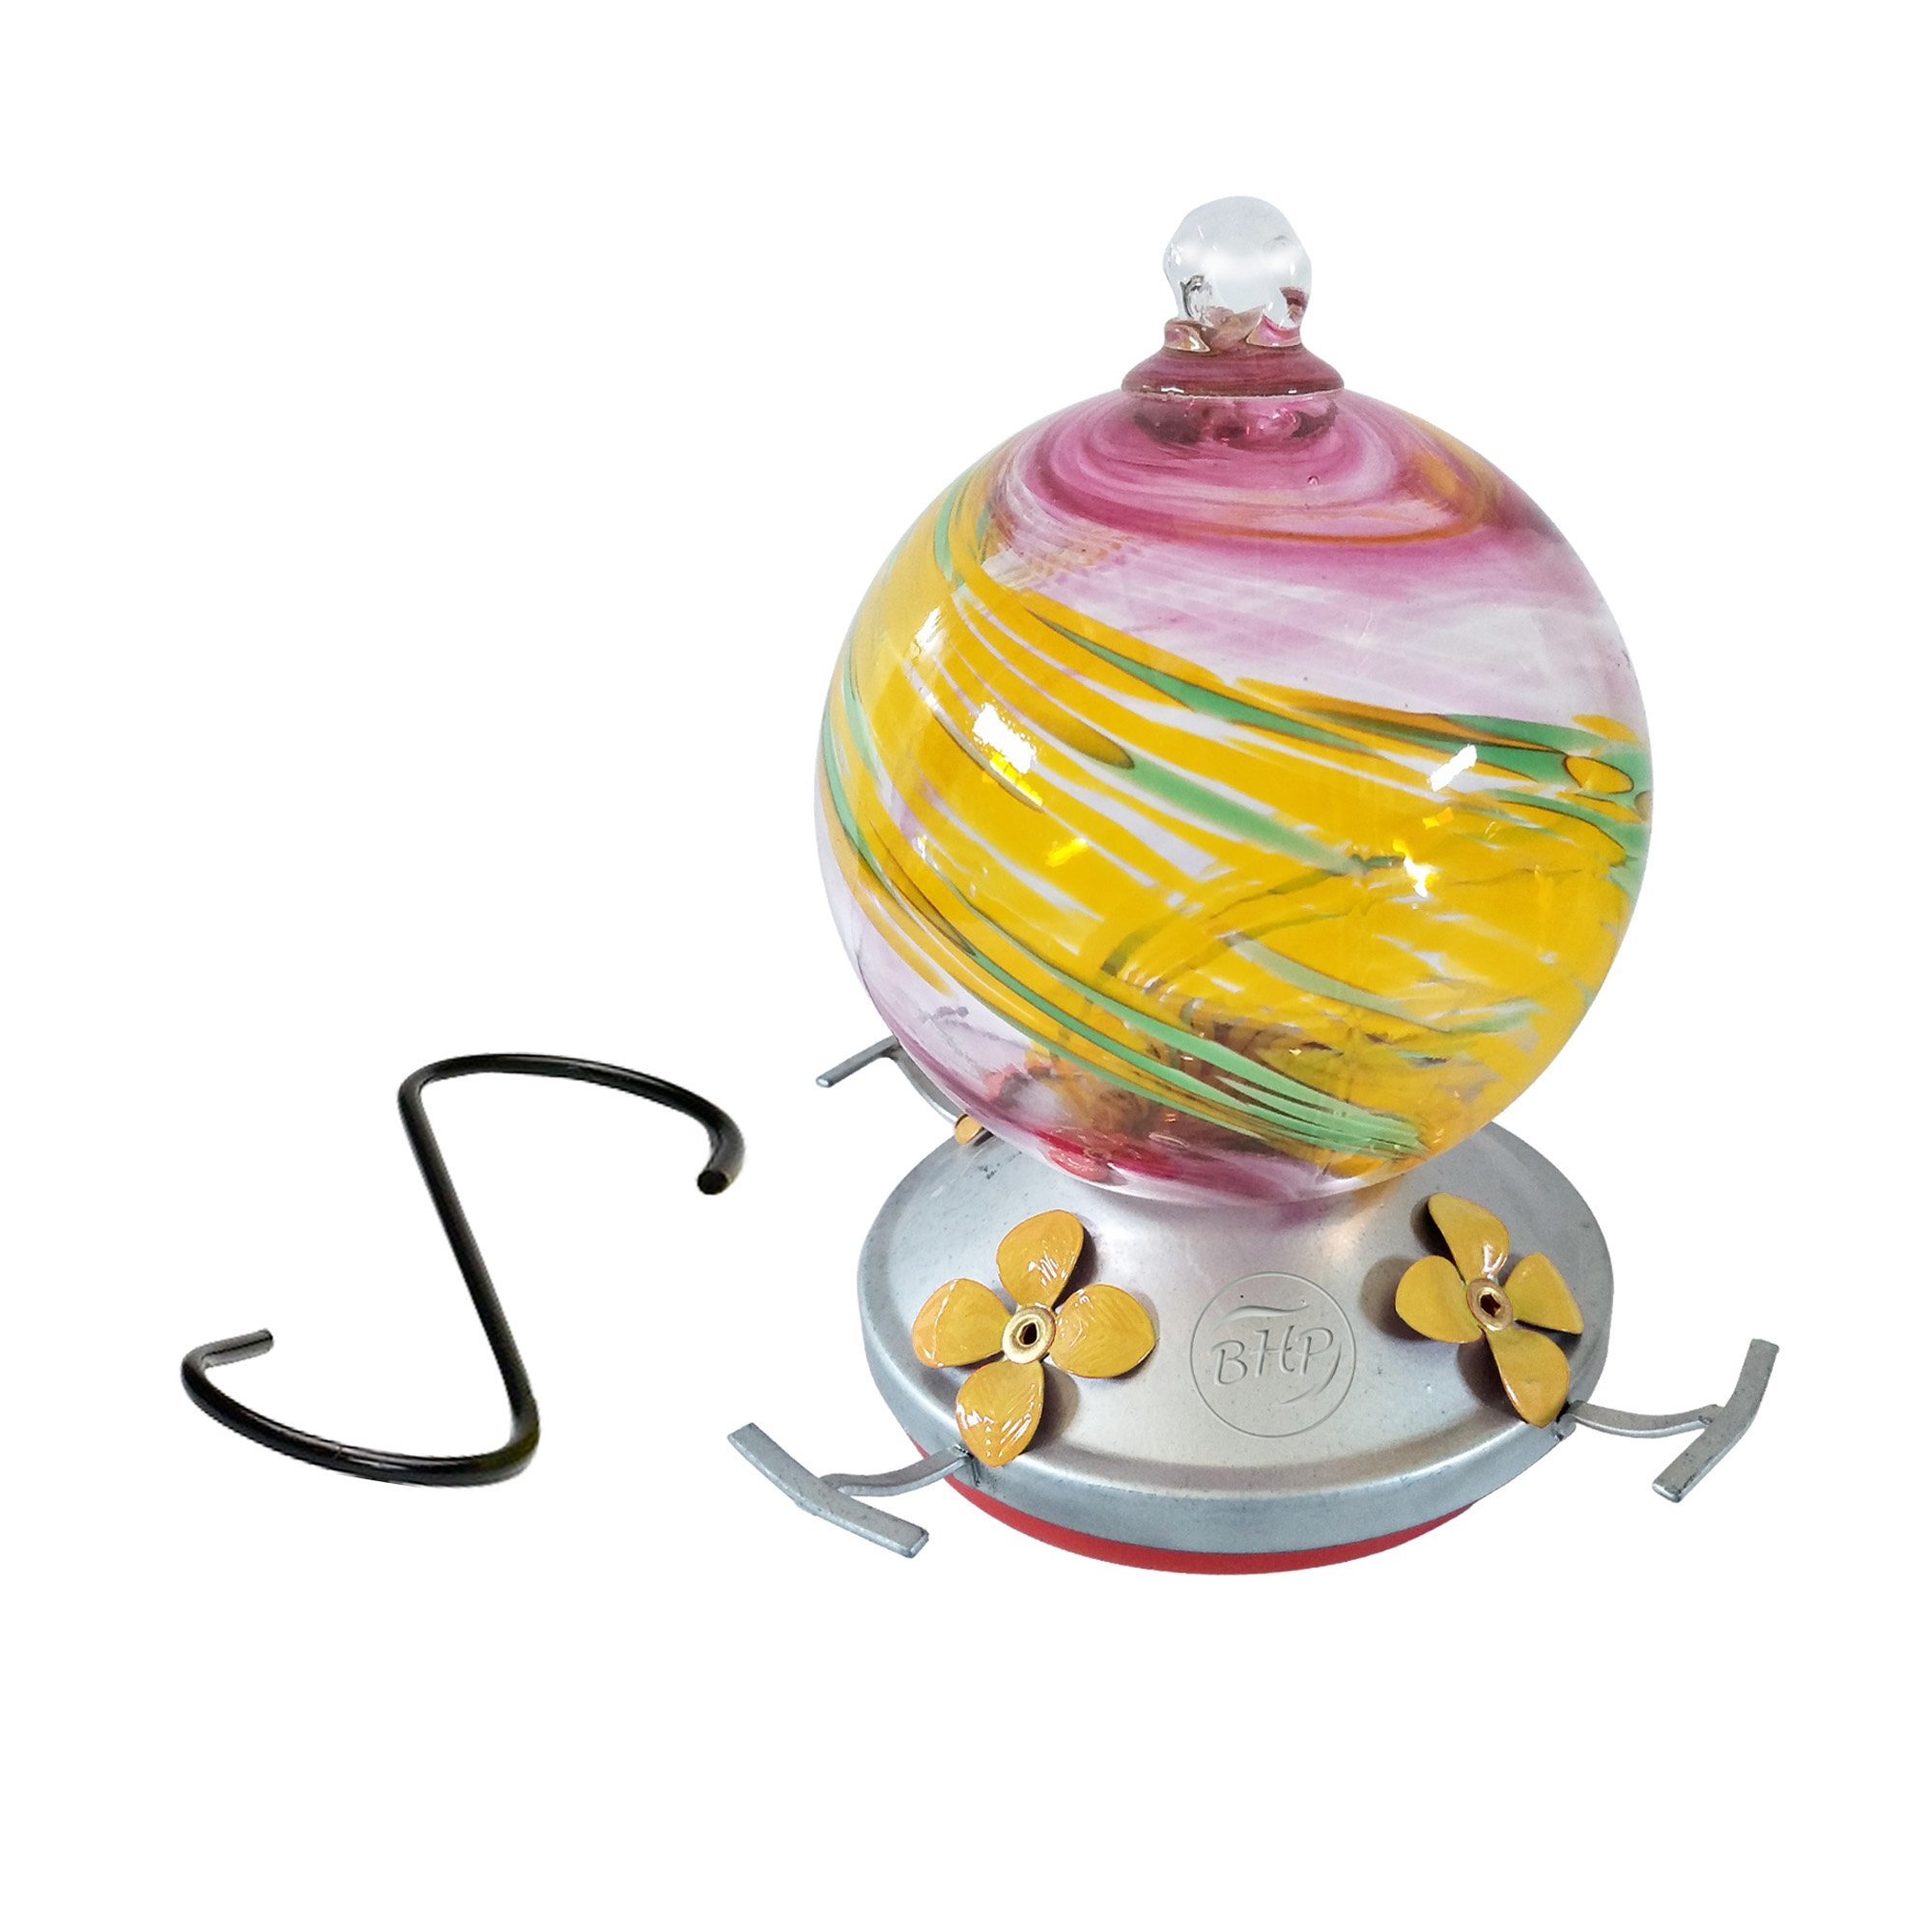 Best Home Products Hummingbird Feeder, Blown Glass, Summertime Swirl, 3 Cups